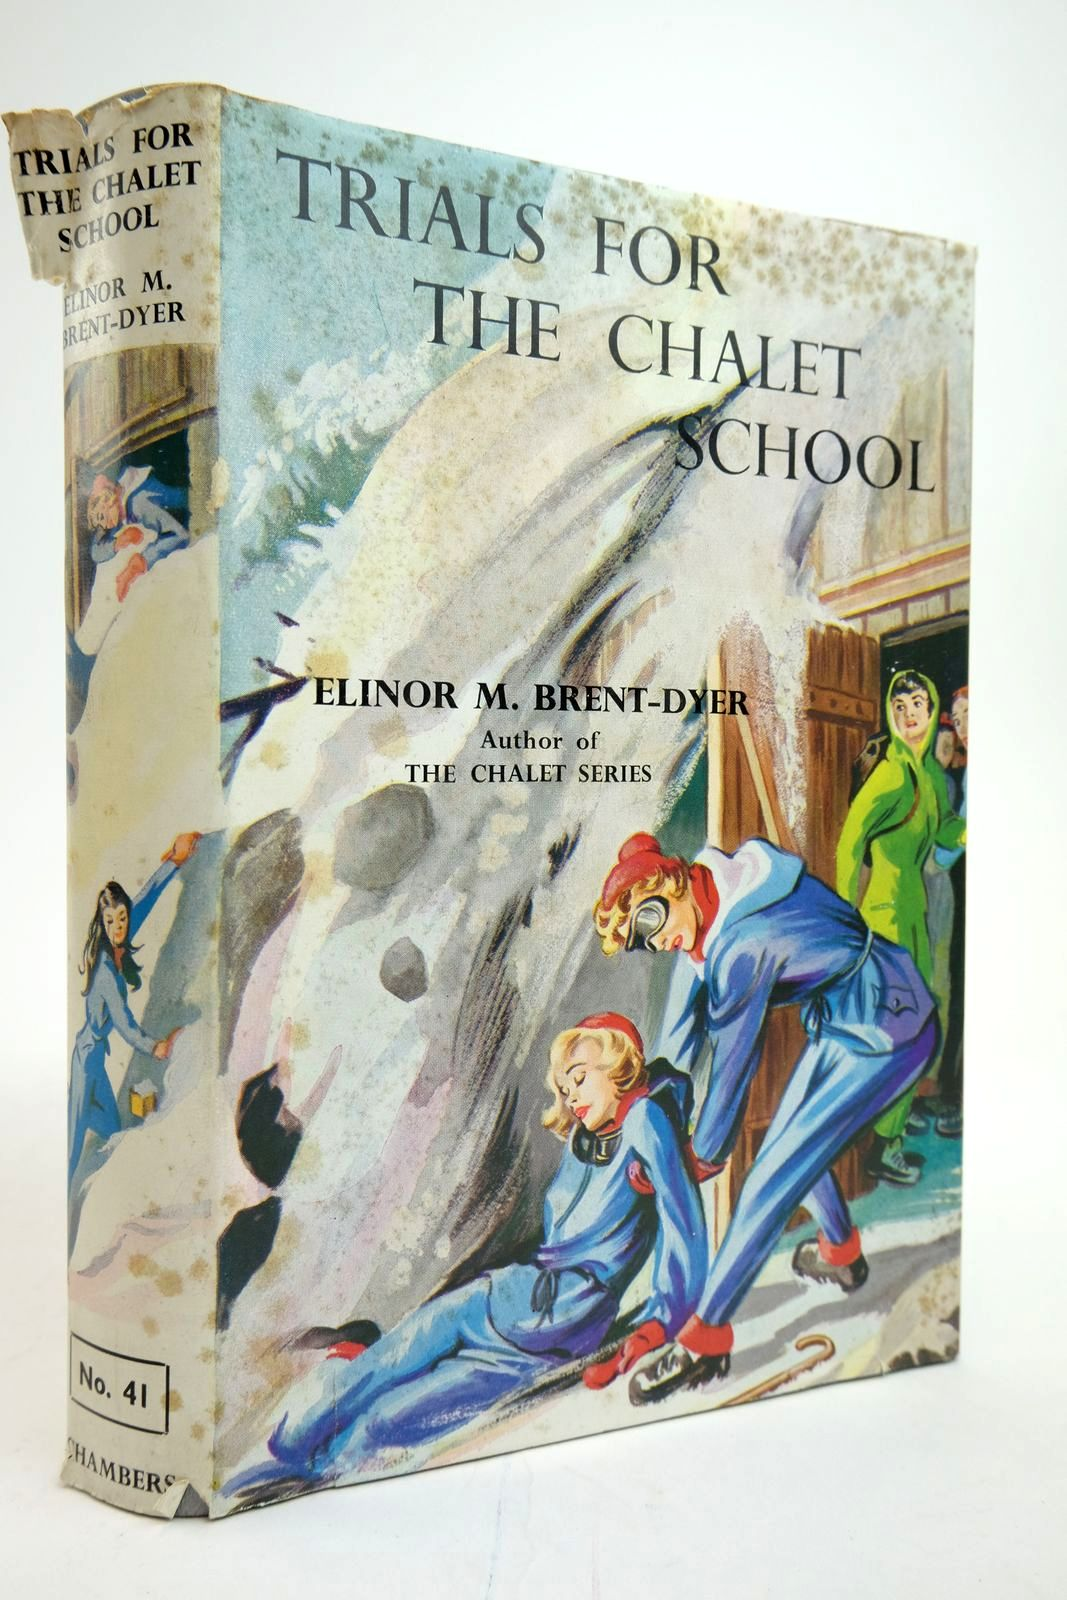 Photo of TRIALS FOR THE CHALET SCHOOL written by Brent-Dyer, Elinor M. illustrated by Brook, D. published by W. & R. Chambers Limited (STOCK CODE: 2135305)  for sale by Stella & Rose's Books